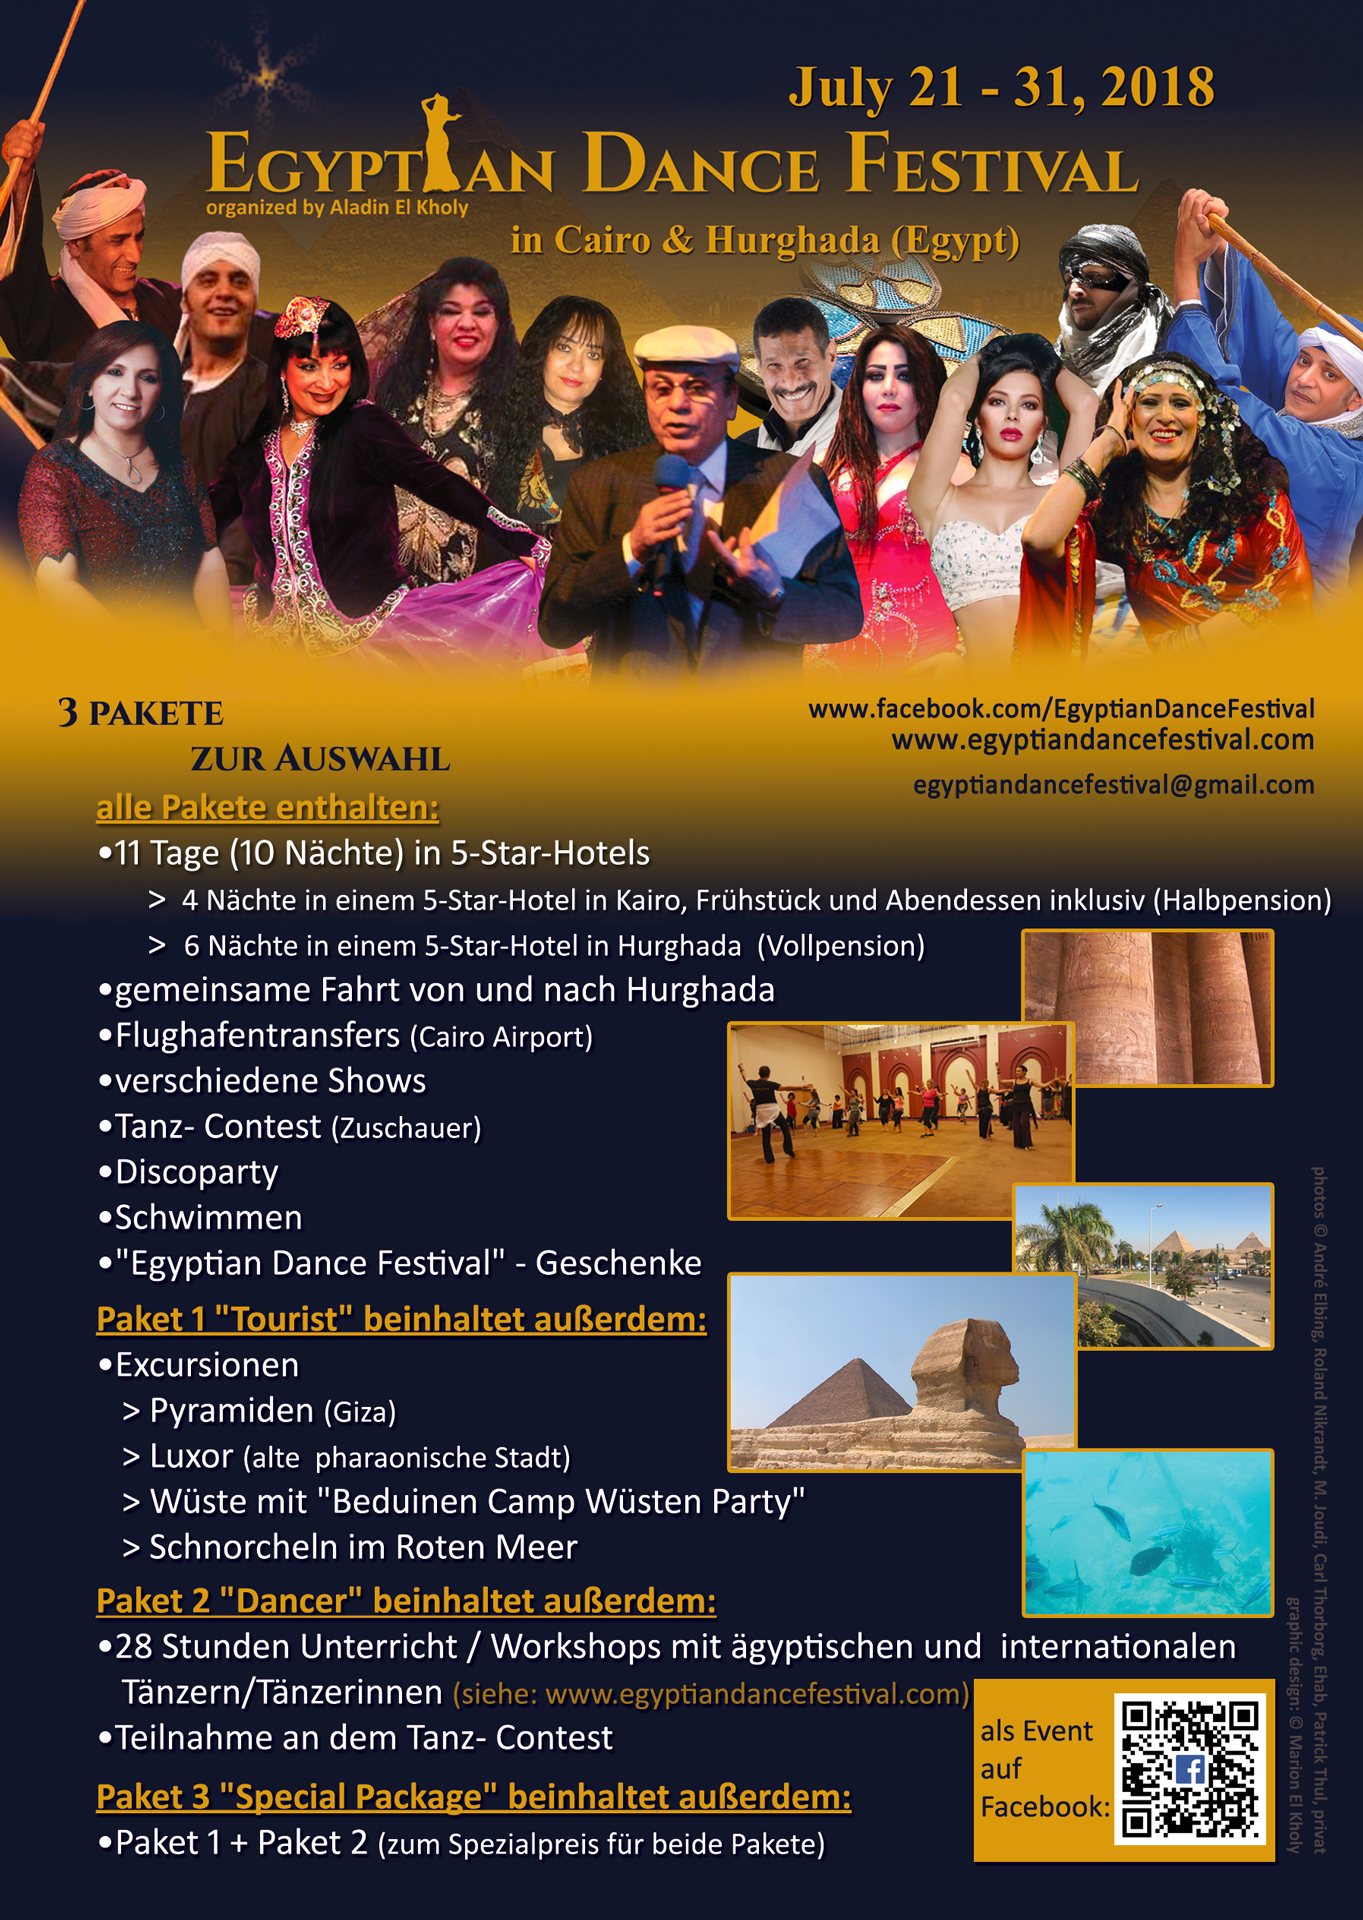 Flyer 2018 (german) Egyptian Dance Festival in Cairo & Hurghada organized by Aladin El Kholy